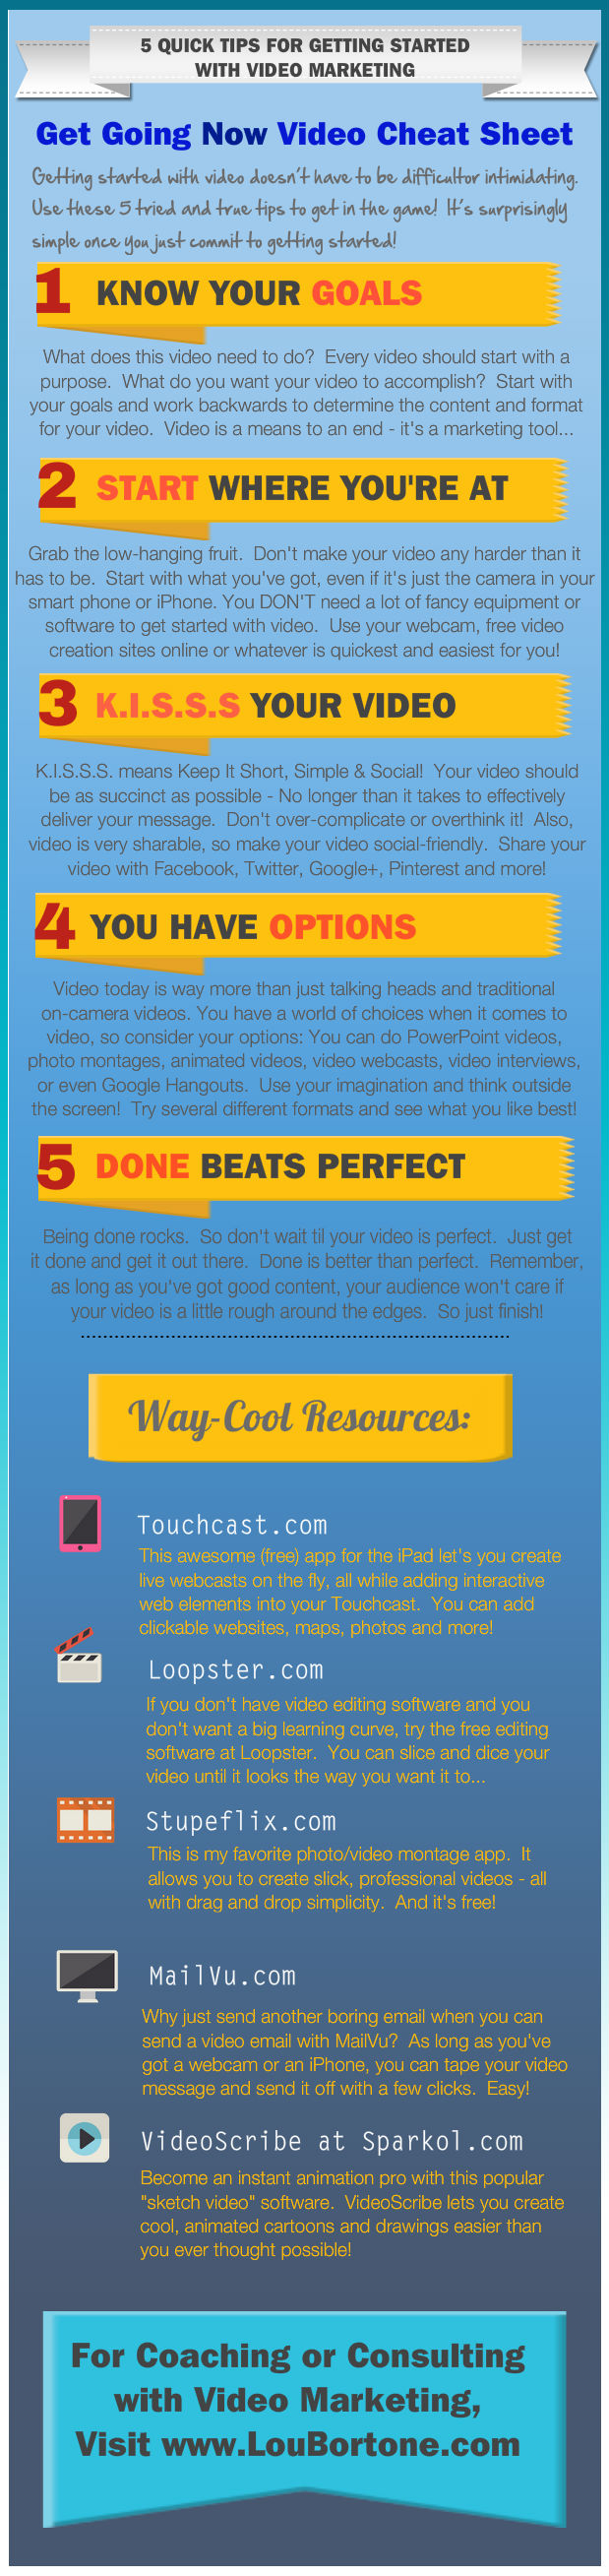 Video Marketing Cheat Sheet